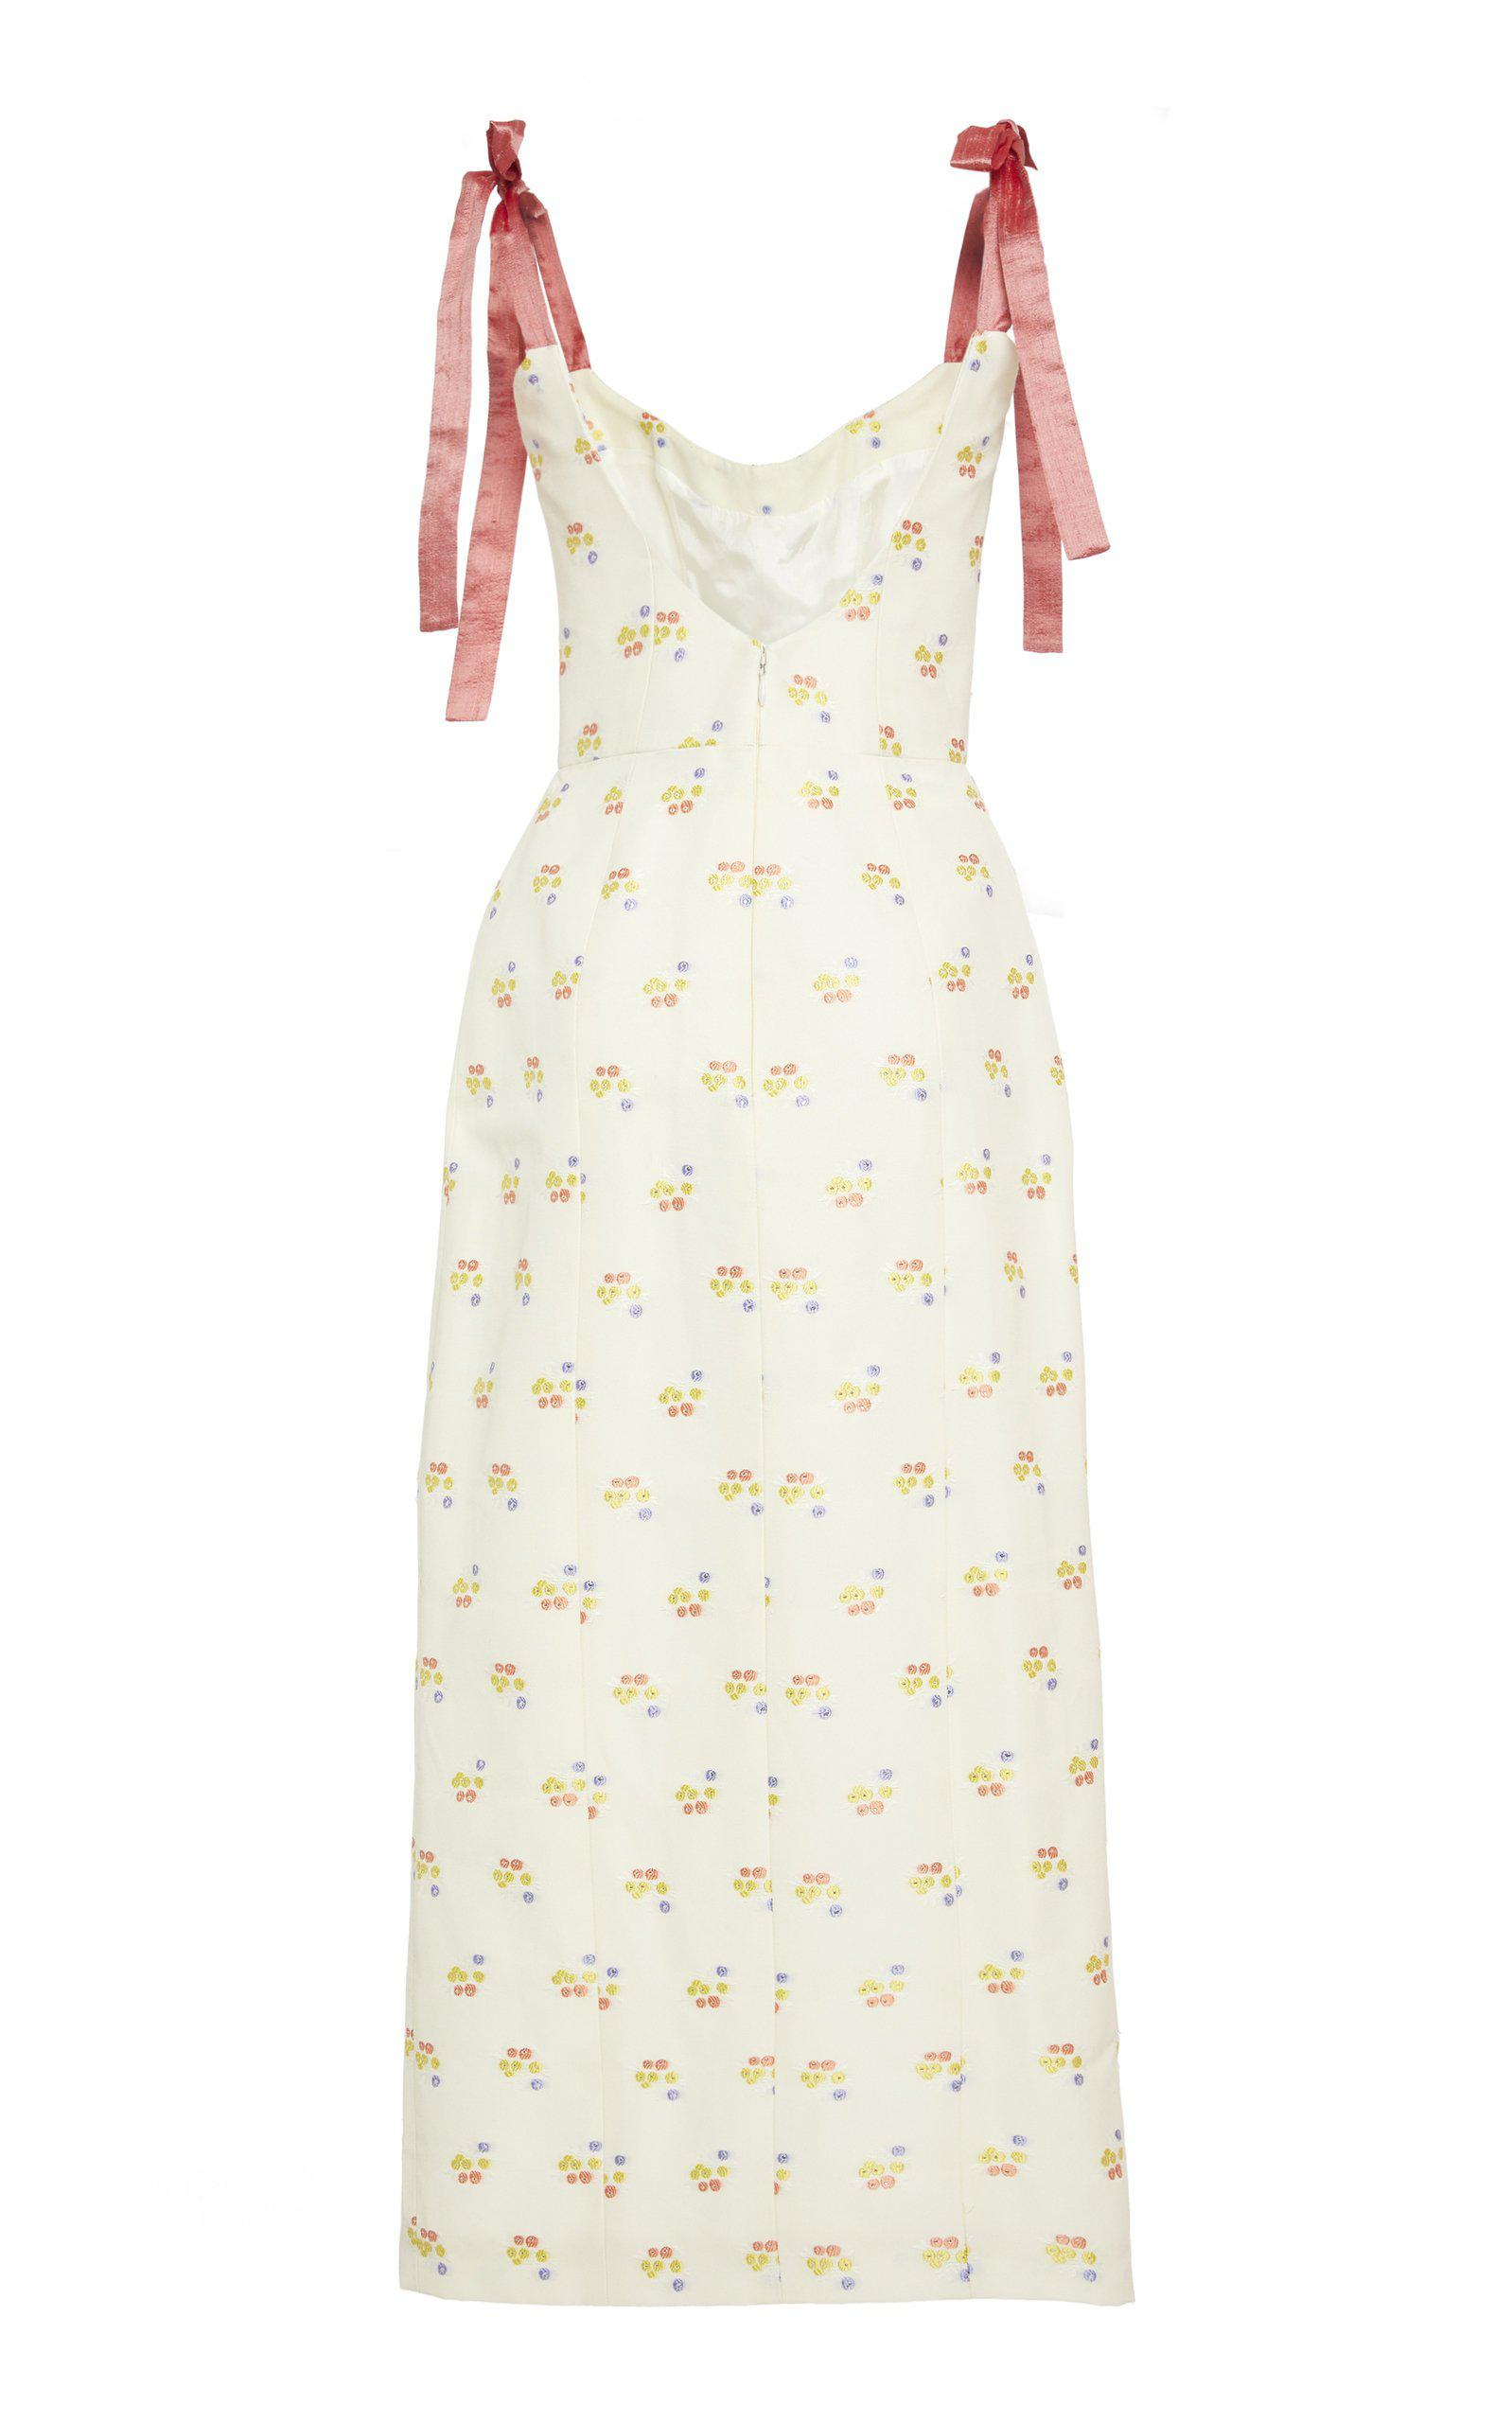 Darcy Floral Embroidered Dress 2